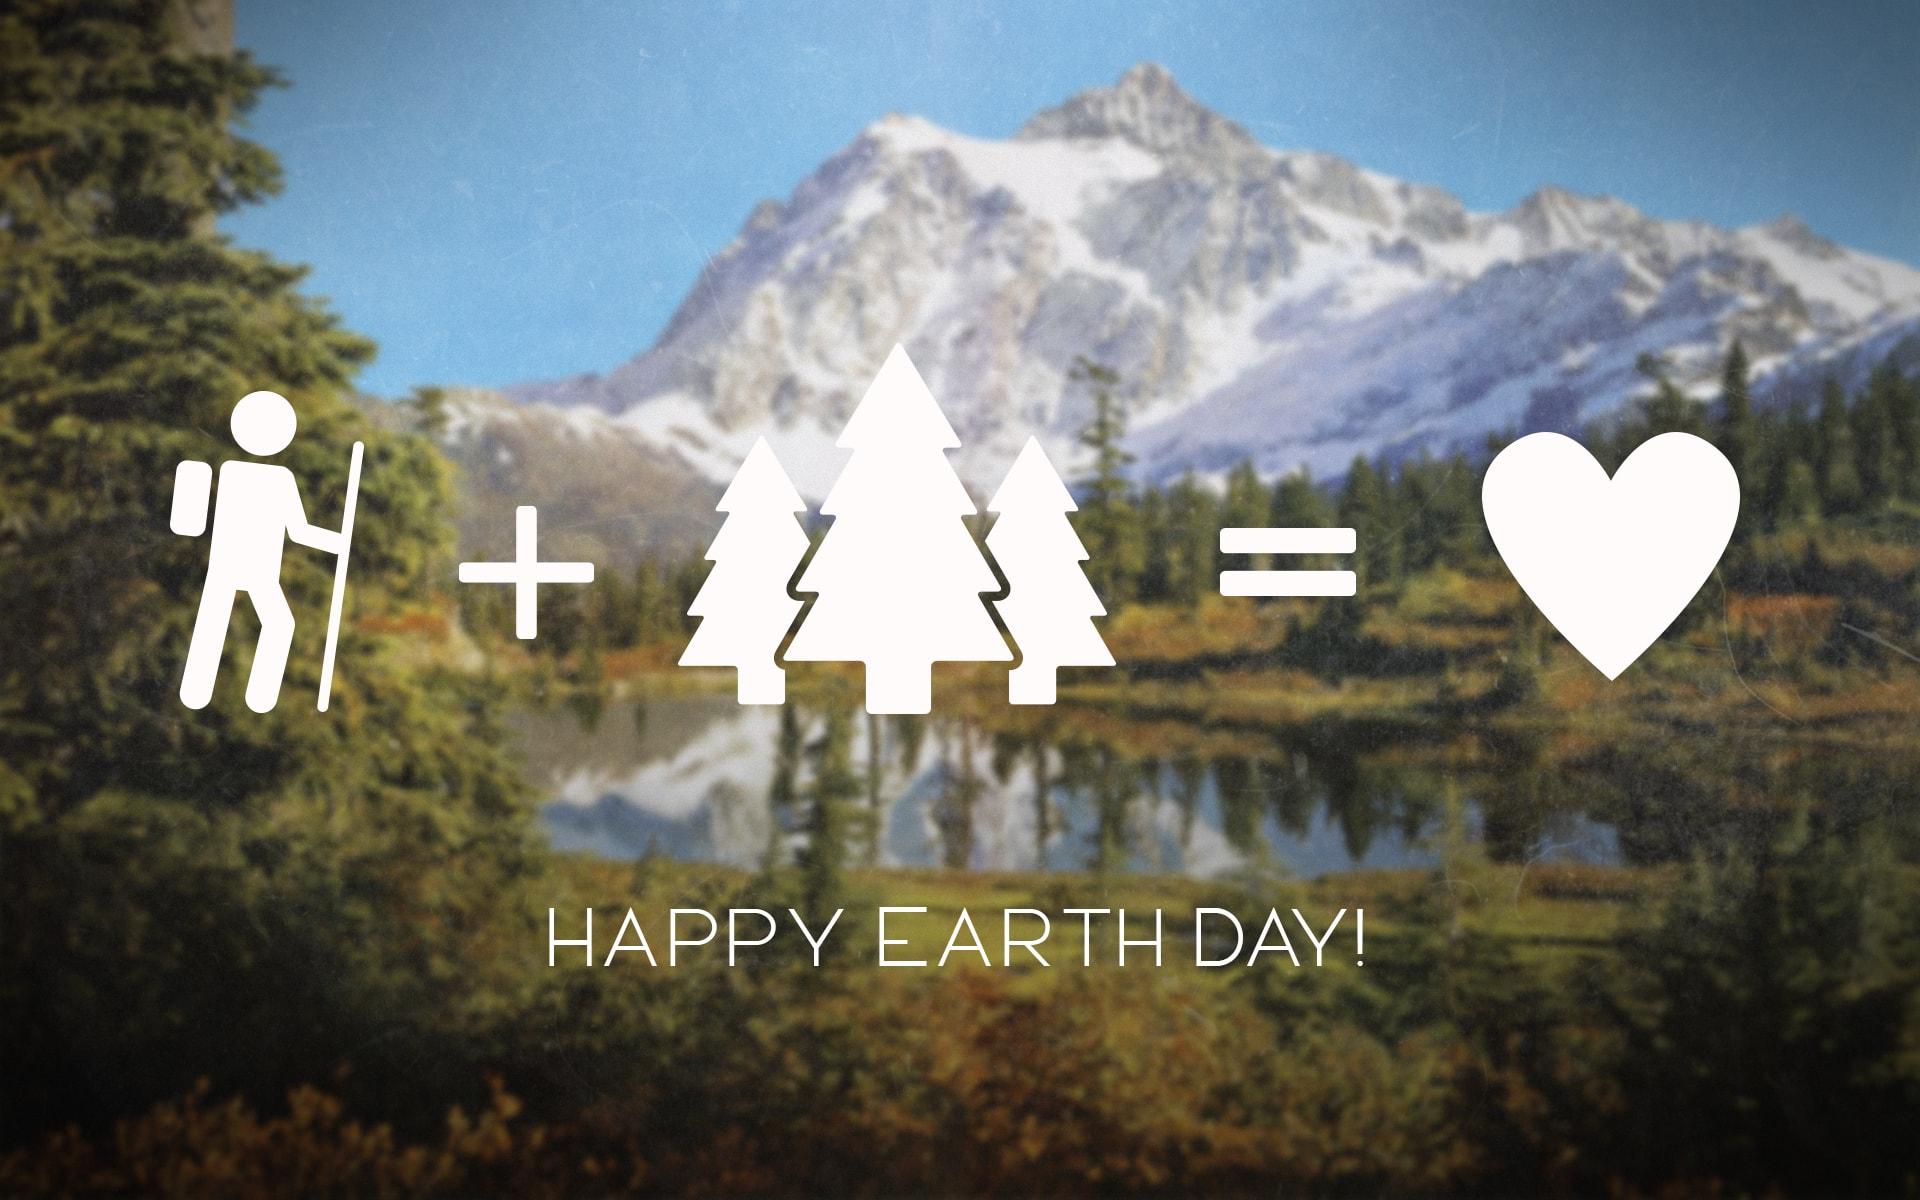 earth day images and wallpapers